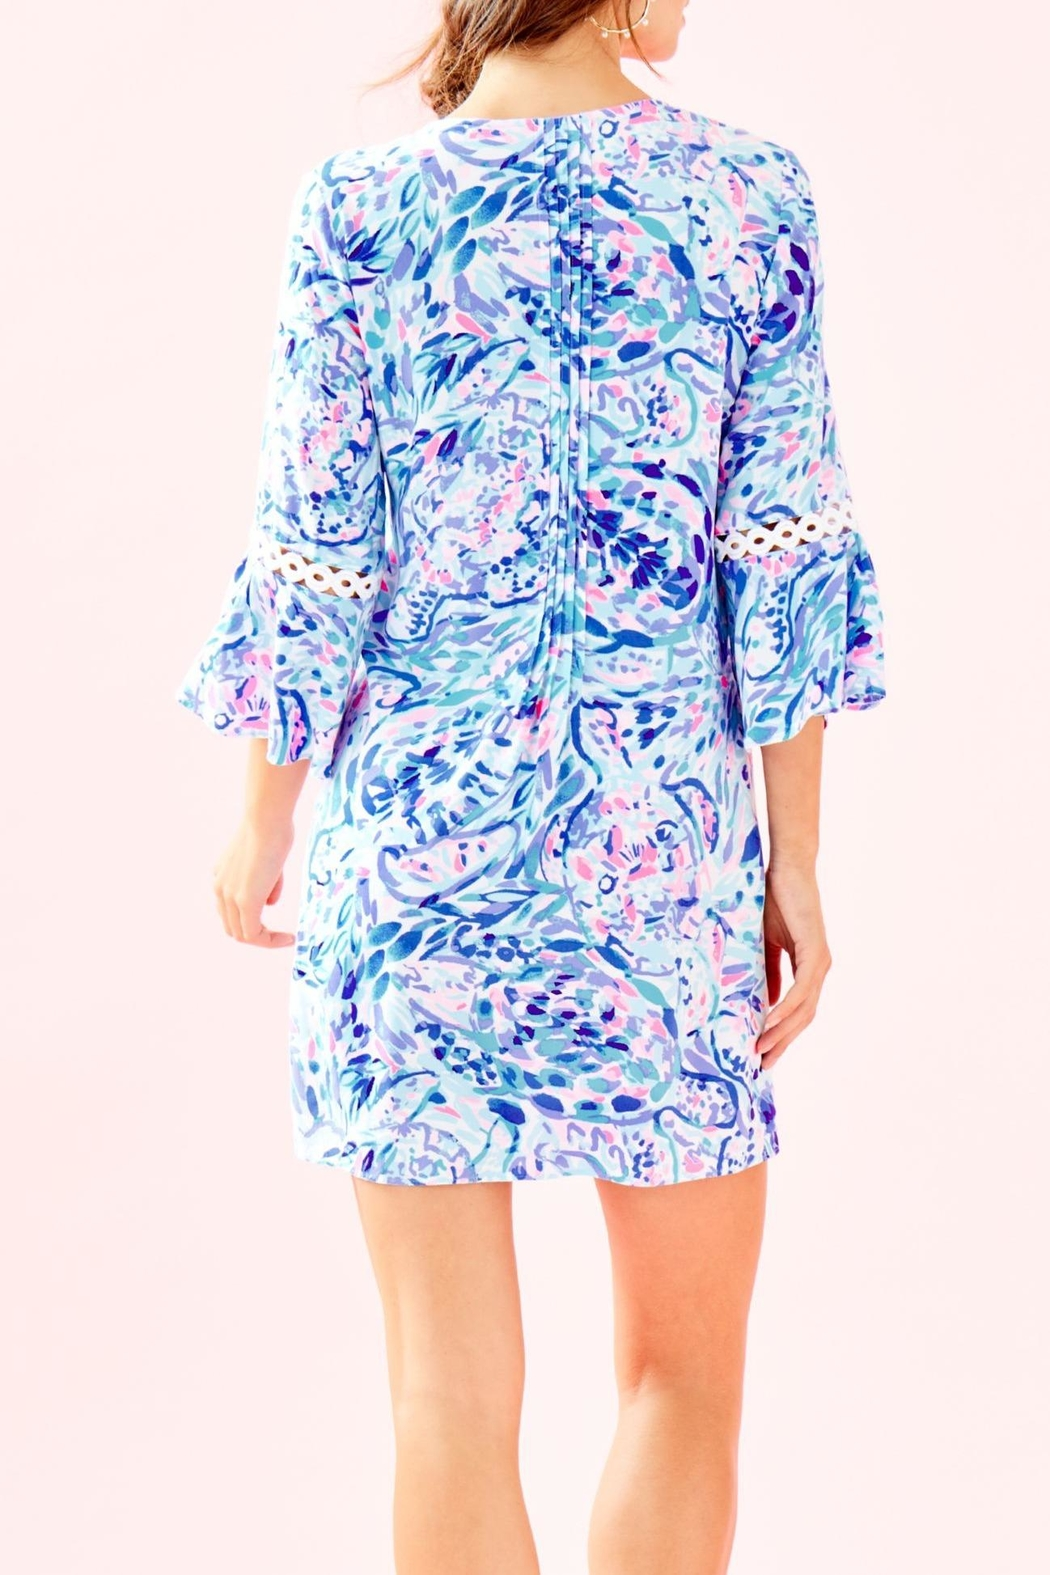 fdecf65fc8dc52 Lilly Pulitzer Hollie Tunic Dress from Sandestin Golf and Beach ...